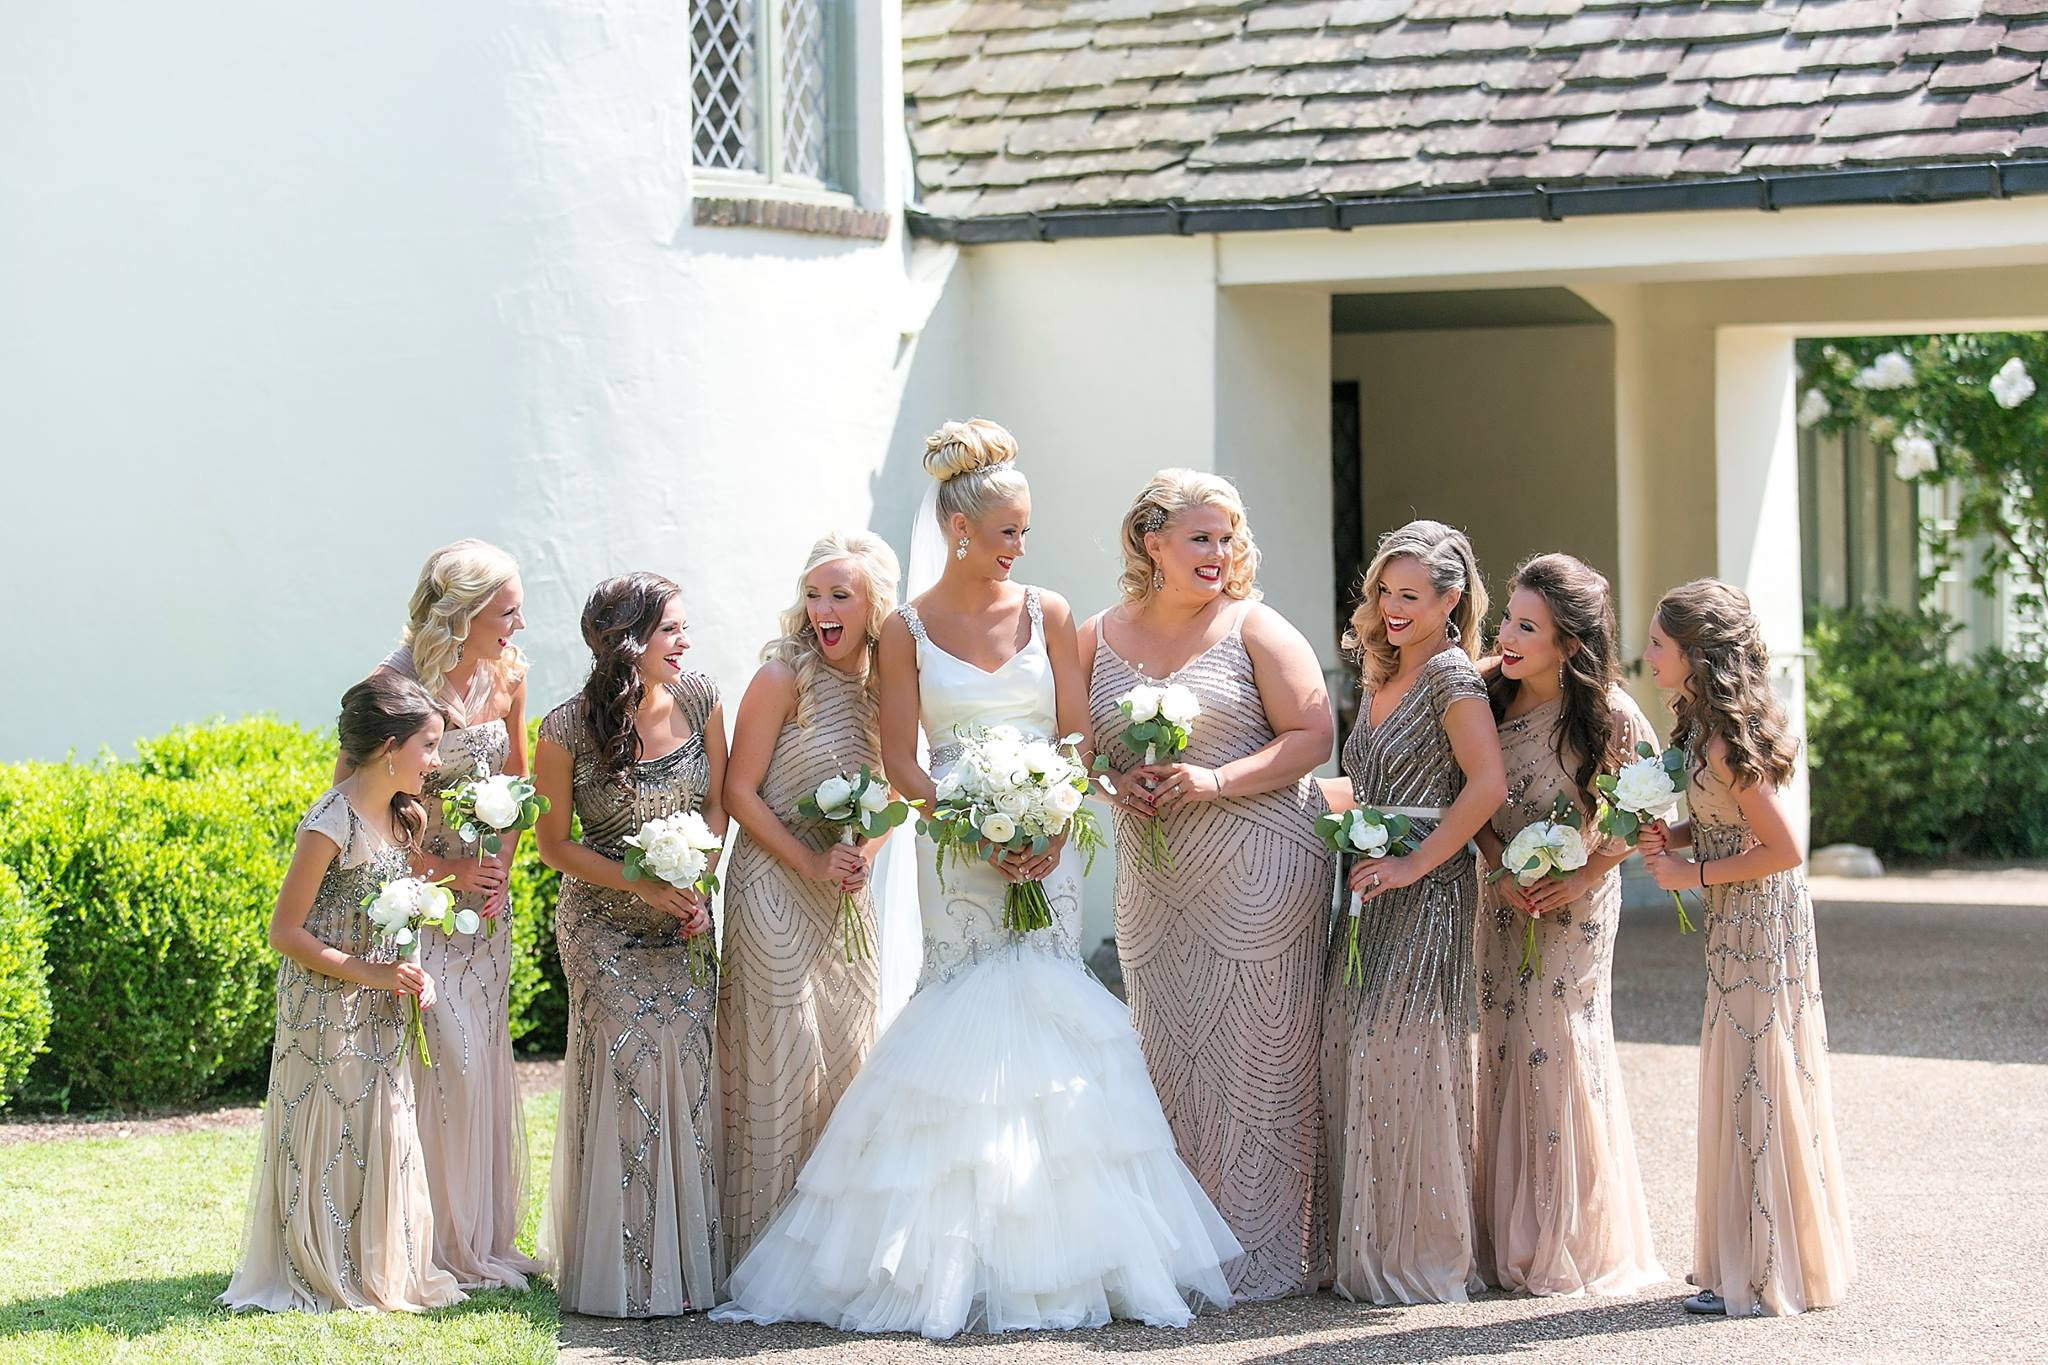 Wedding Wednesday Introducing Bridal Party | love 'n' labels www.lovenlabels.com